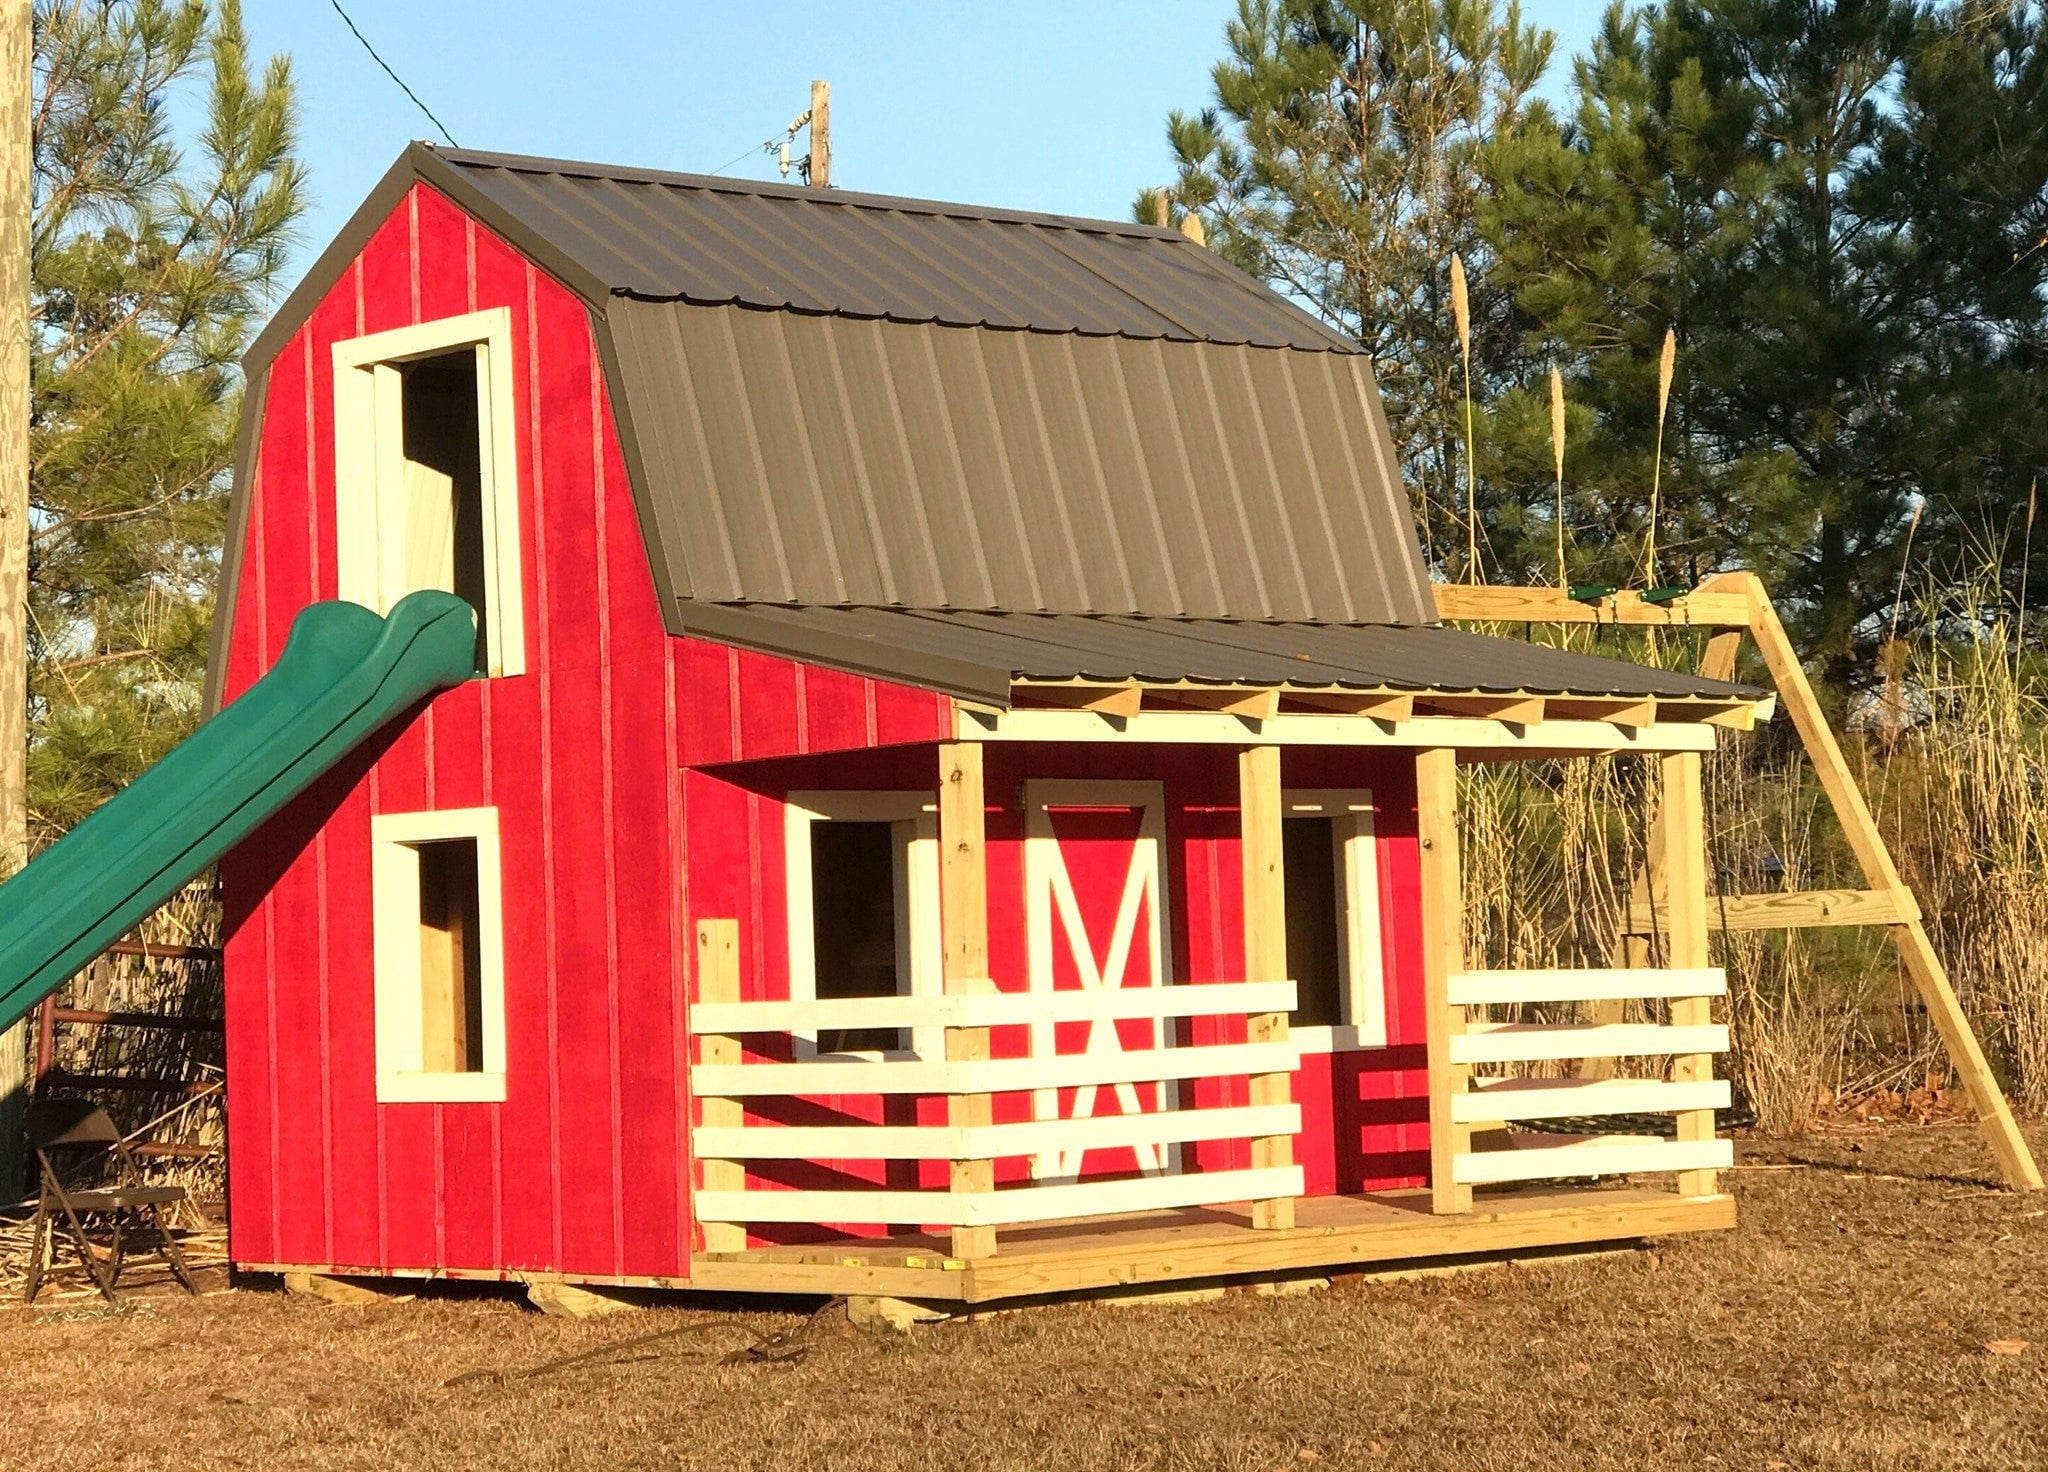 12x19 Barn Amp Silo 2 Story Playhouse Plan For Kids Paul